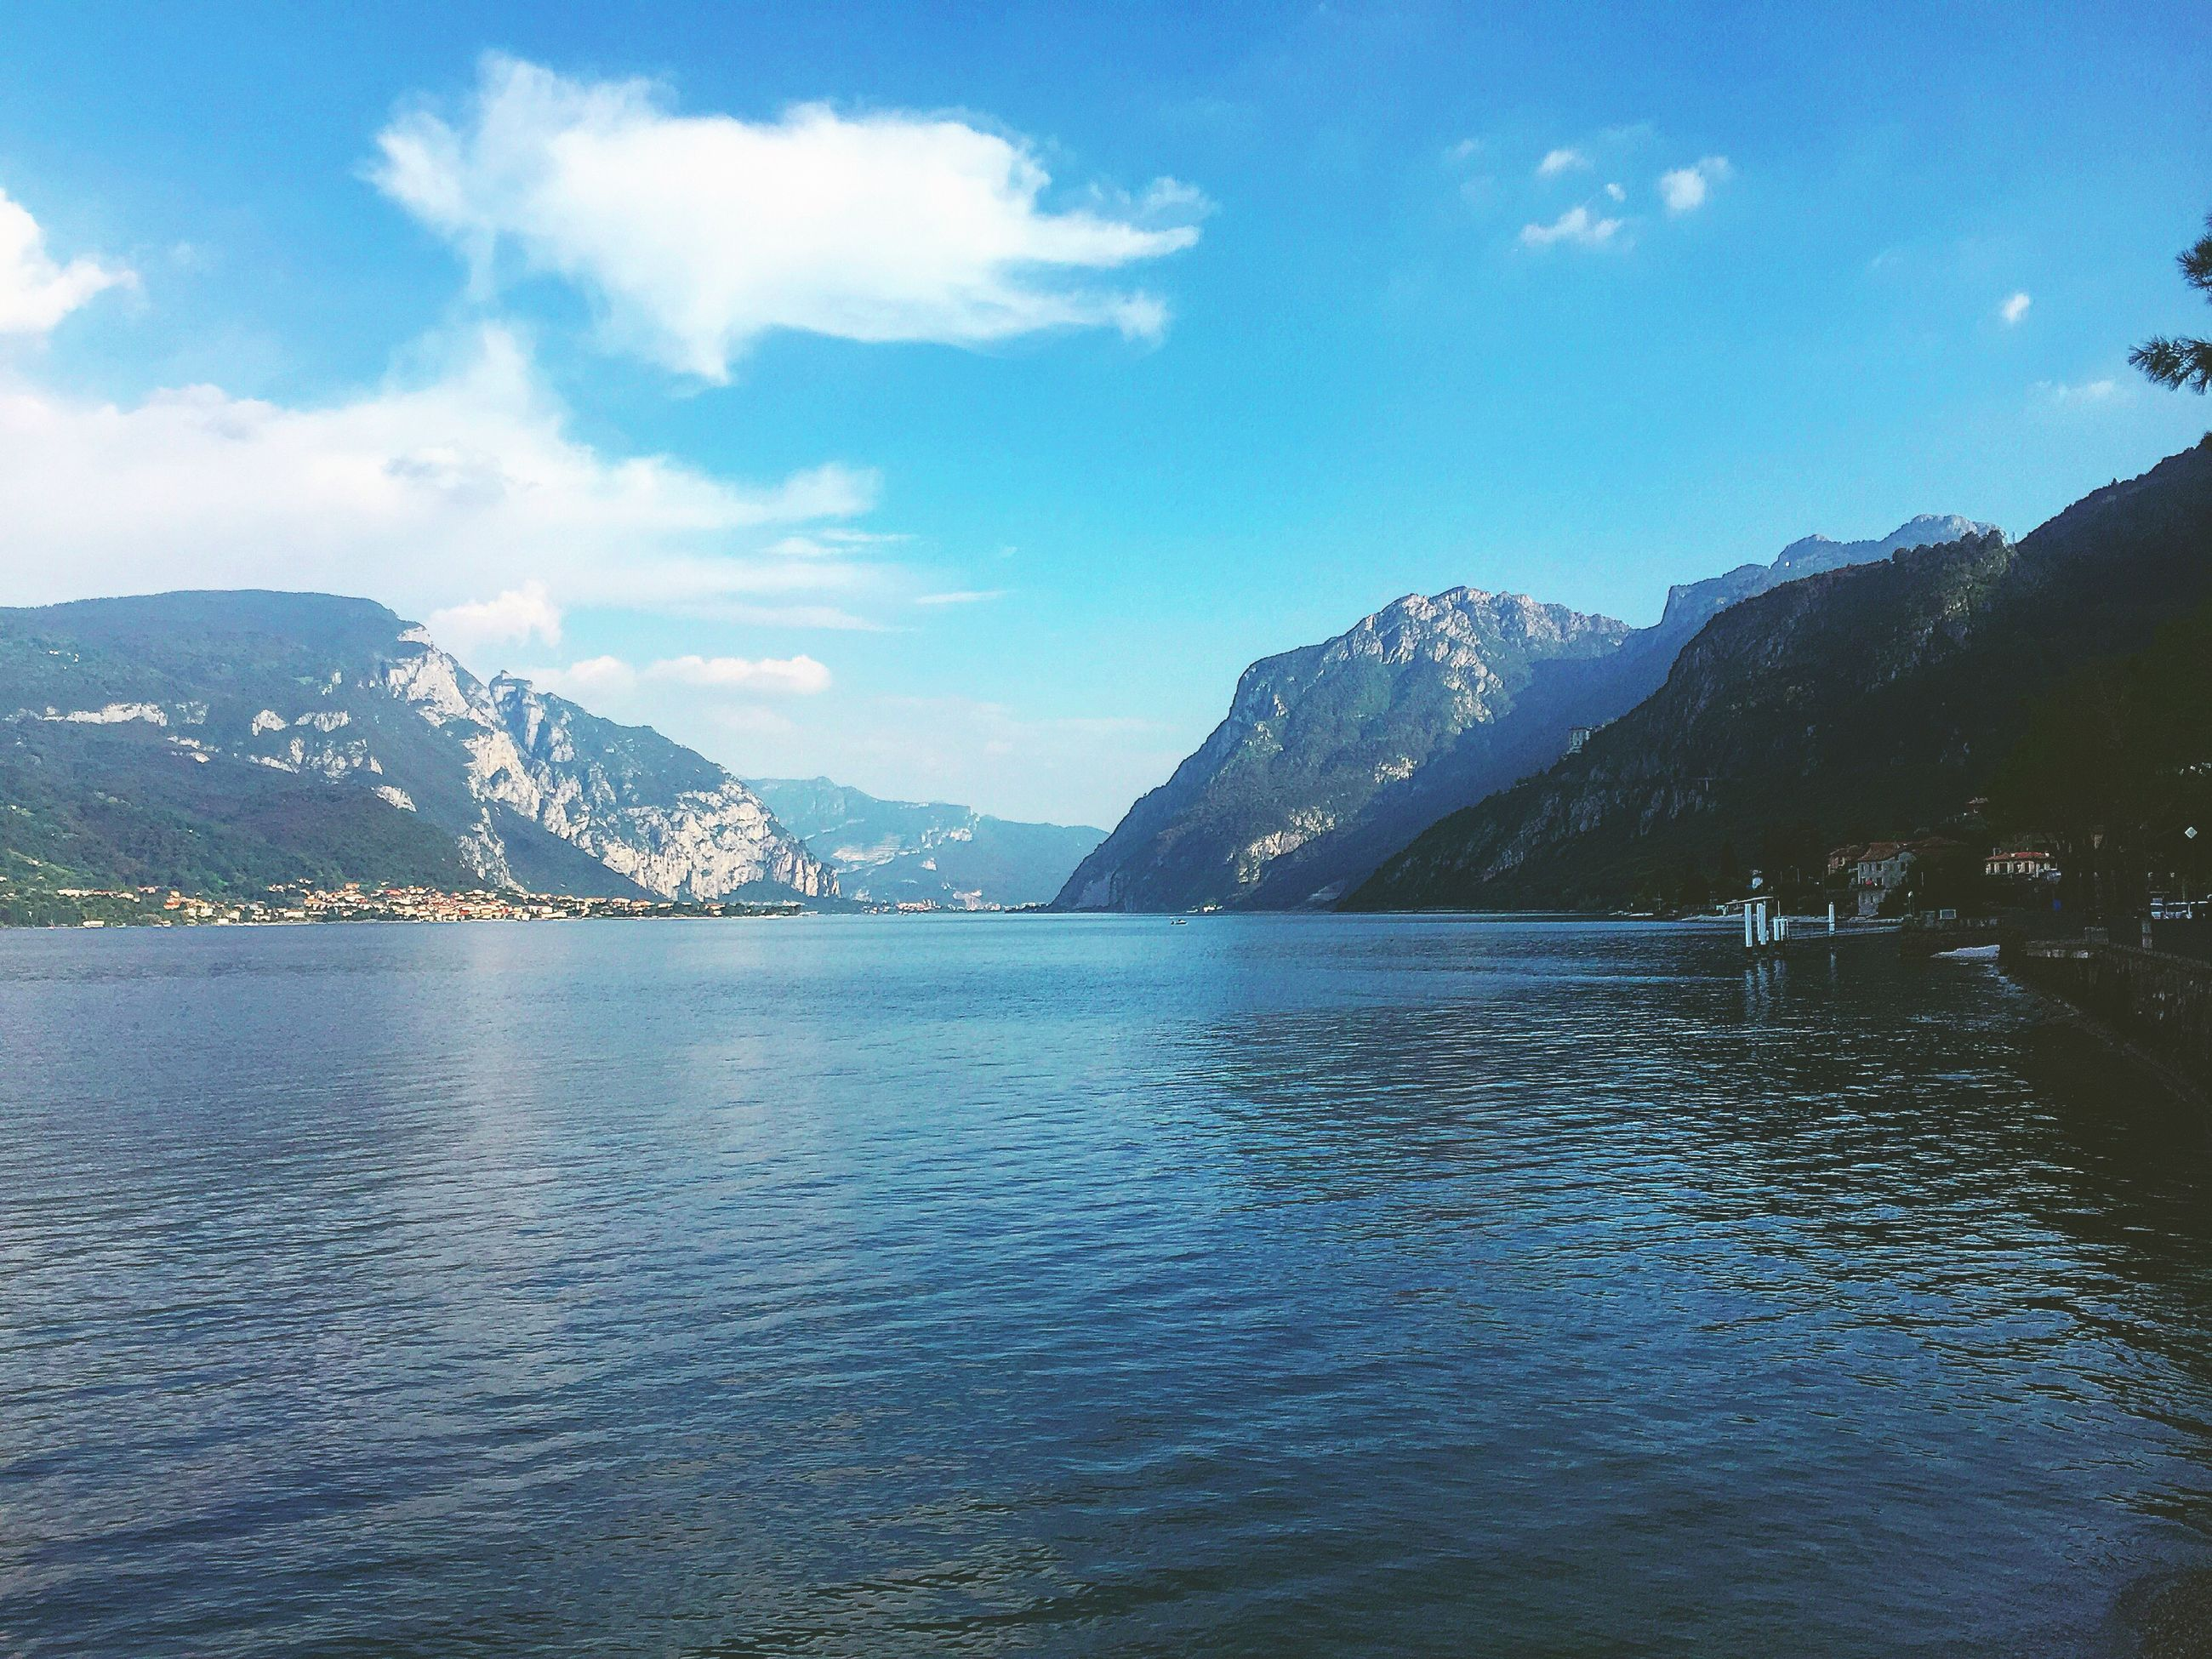 mountain, scenics, tranquility, beauty in nature, tranquil scene, nature, water, mountain range, idyllic, sky, no people, lake, waterfront, outdoors, day, rippled, landscape, view into land